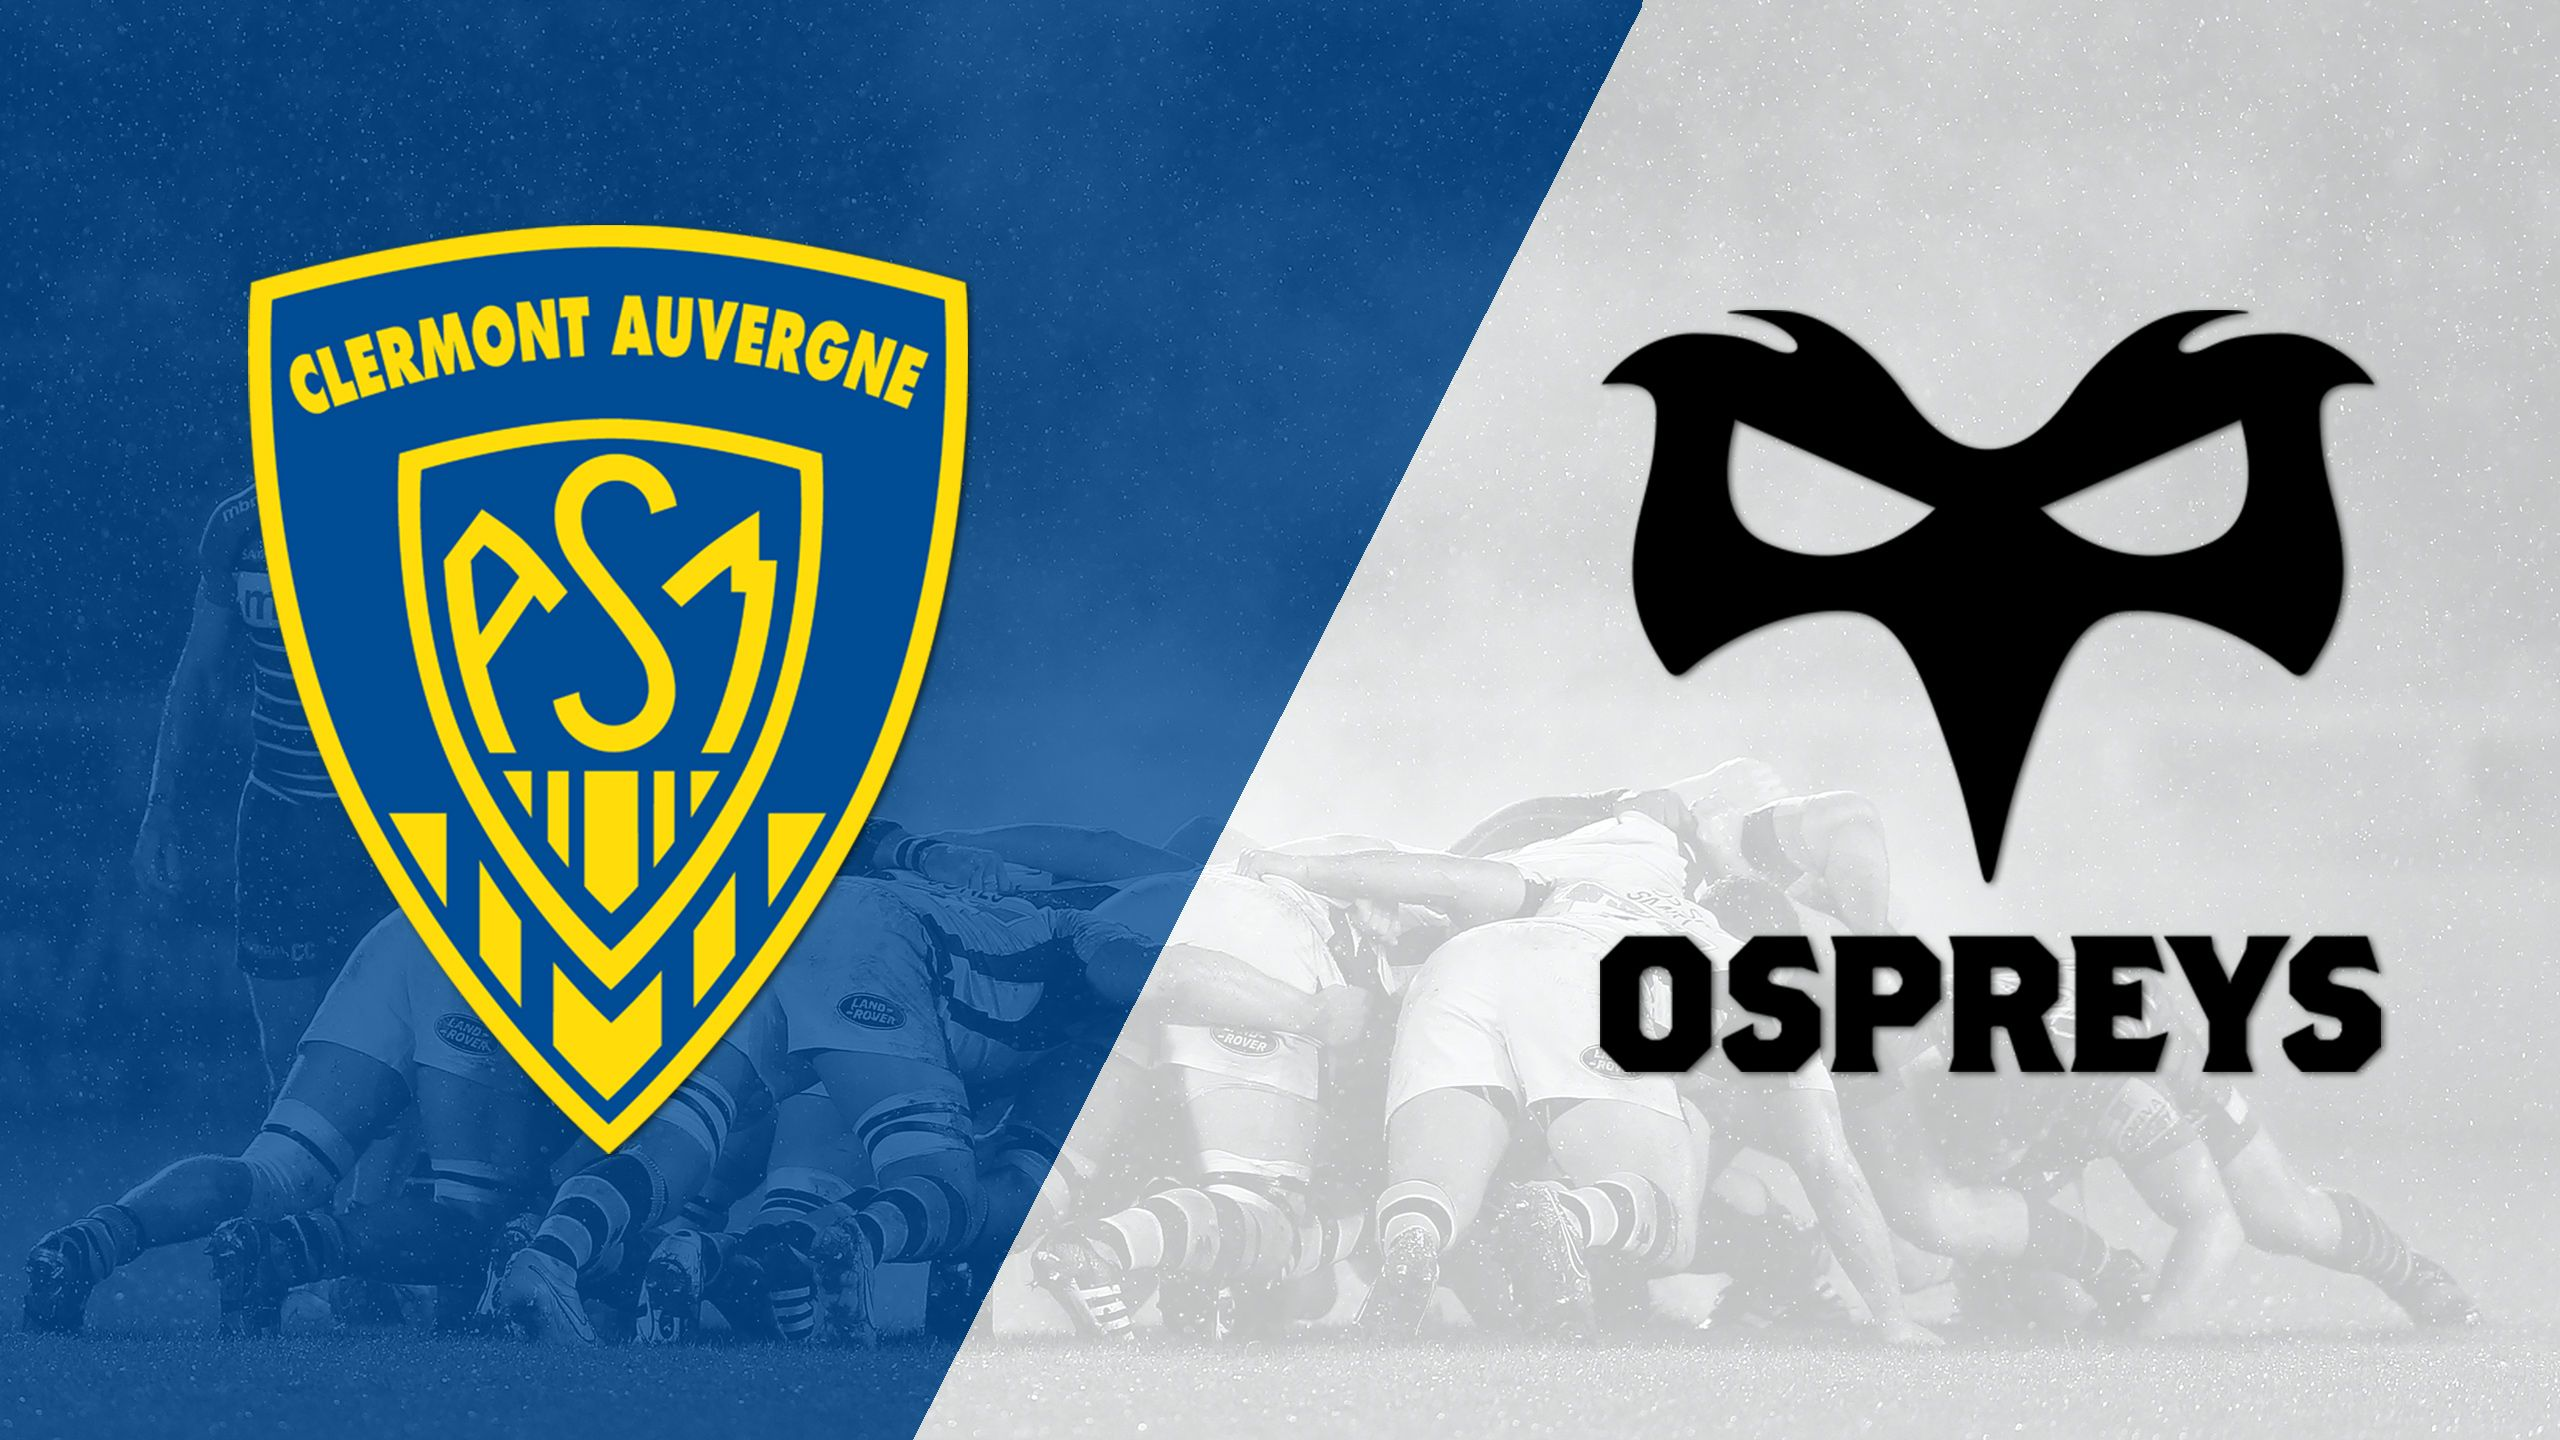 Asm Clermont Auvergne vs. Ospreys (Round 6) (European Champions Cup)